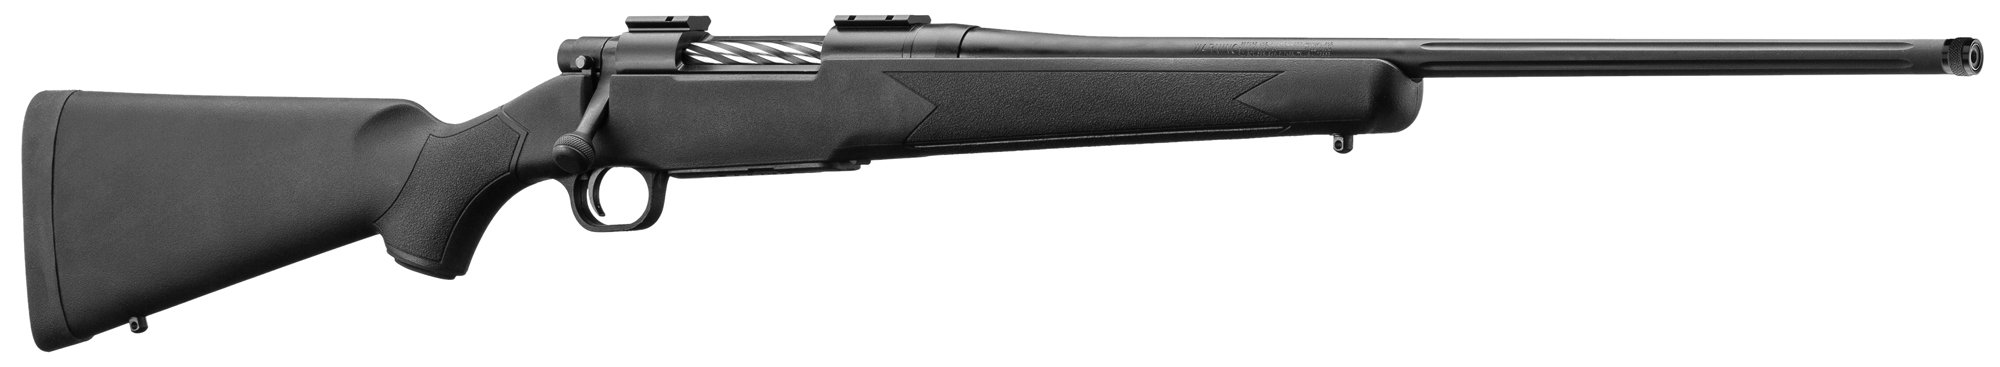 MO2430F-2-Carabines Mossberg Patriot à canon fileté - crosse Synthétique - MO2430F